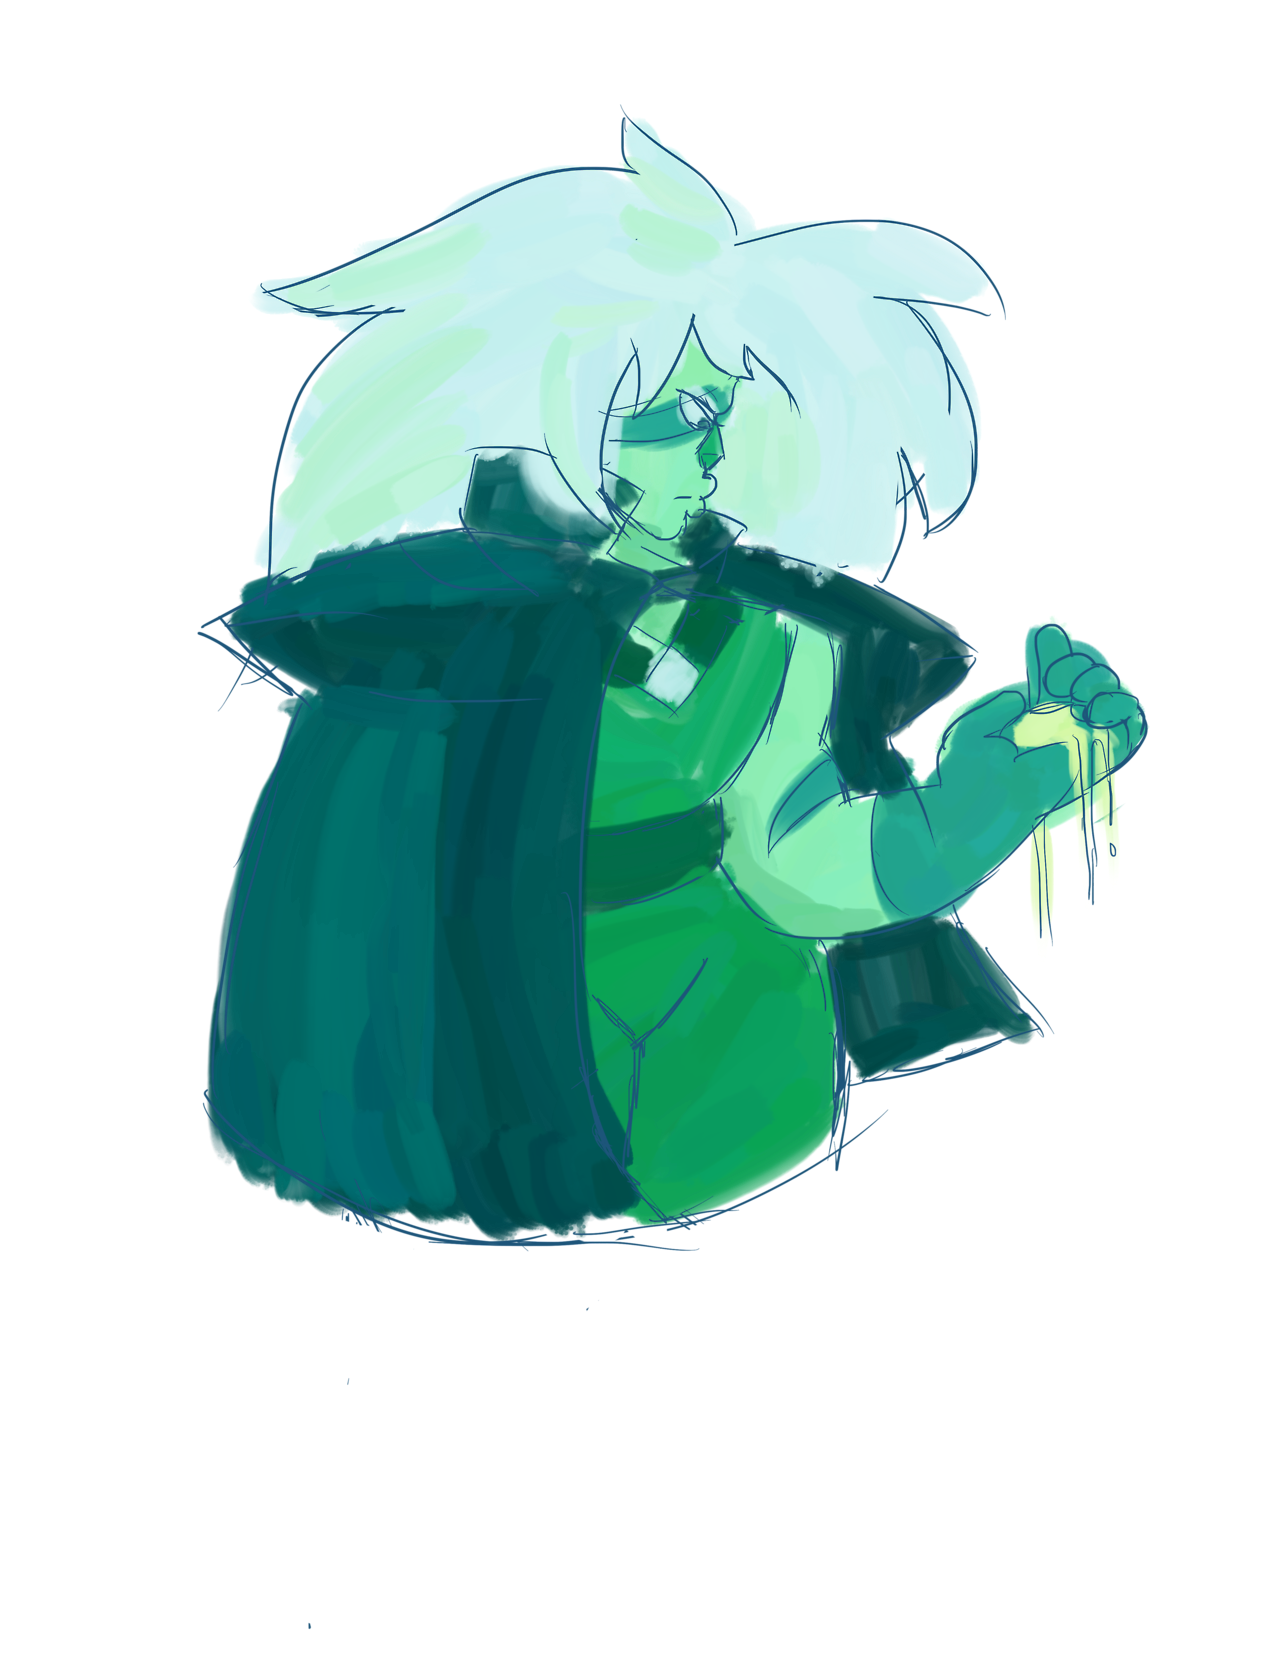 quick jasper doodle. listening to metallica and thinking about anakin skywalker